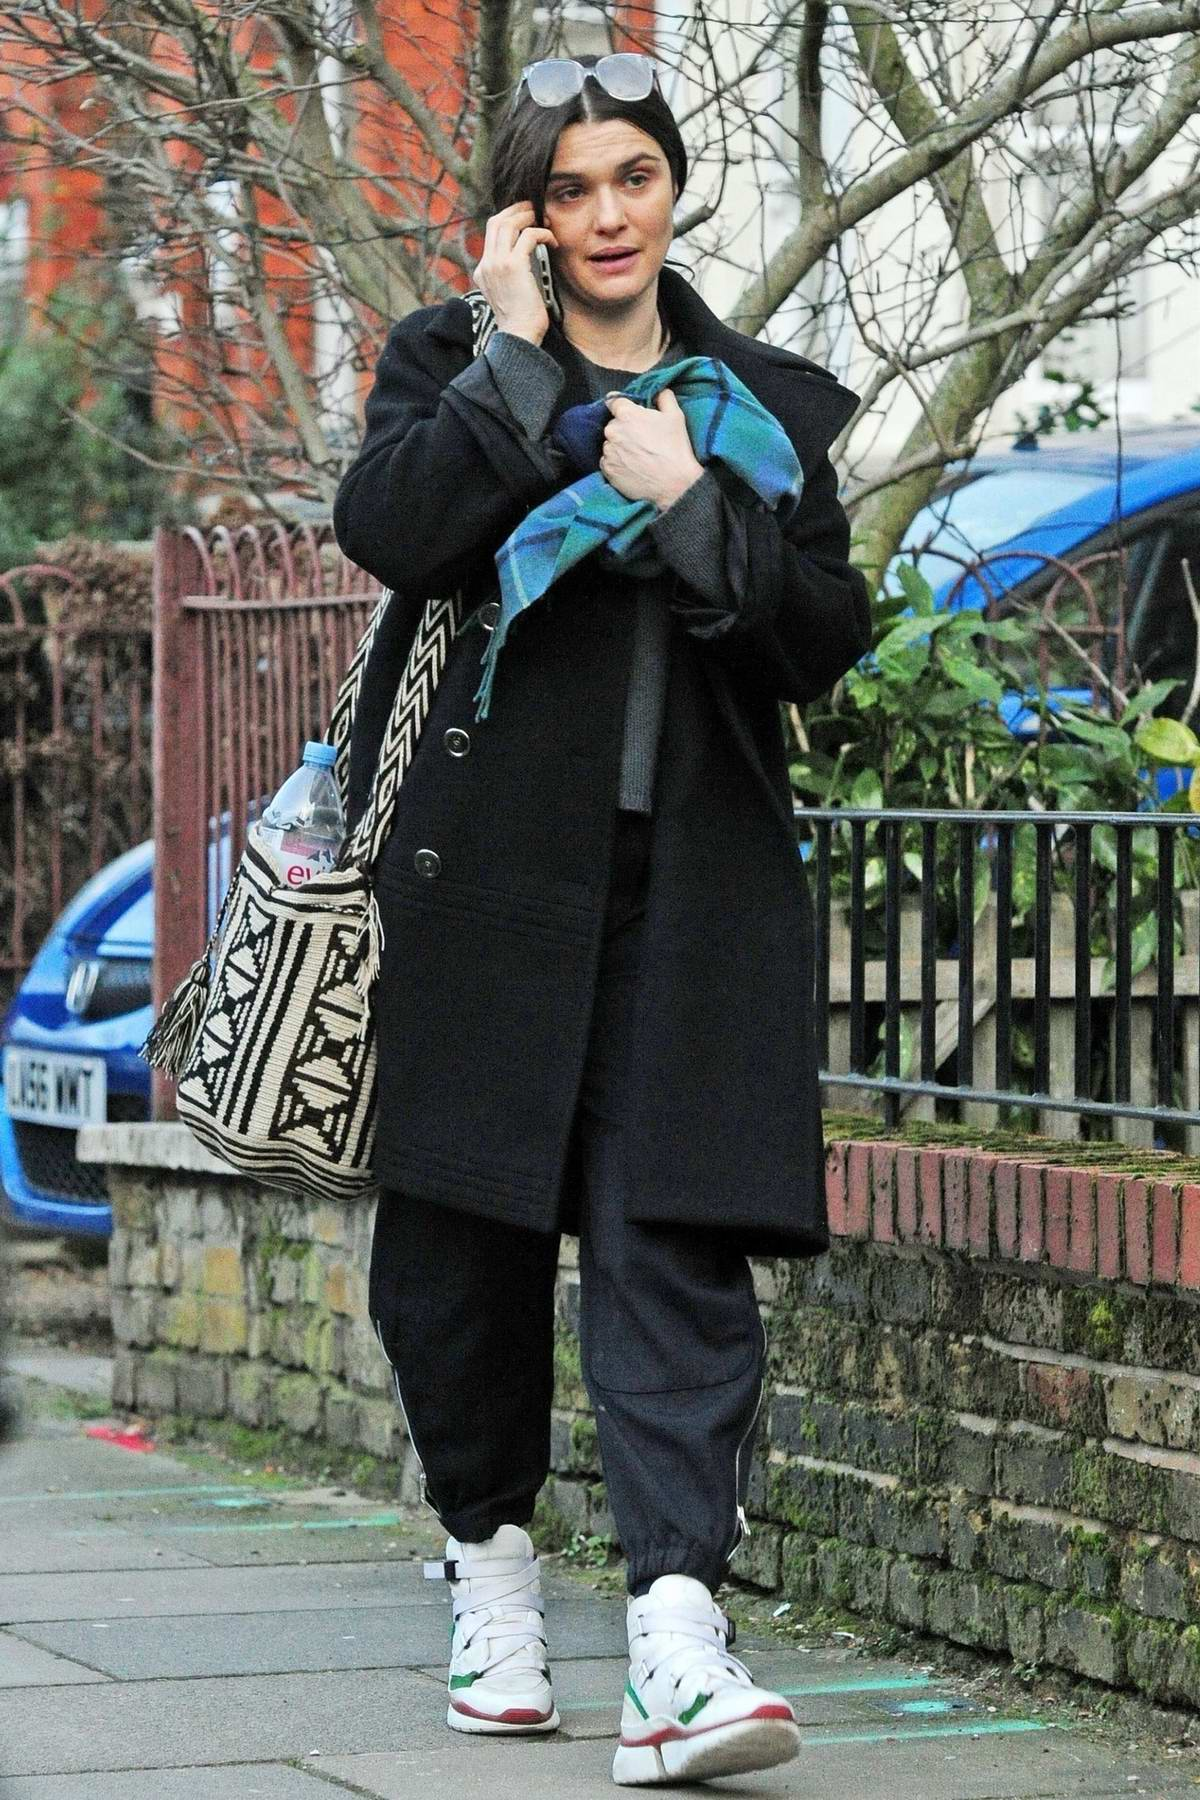 Rachel Weisz keeps warm in a black long coat and trainers as she steps out in London, UK